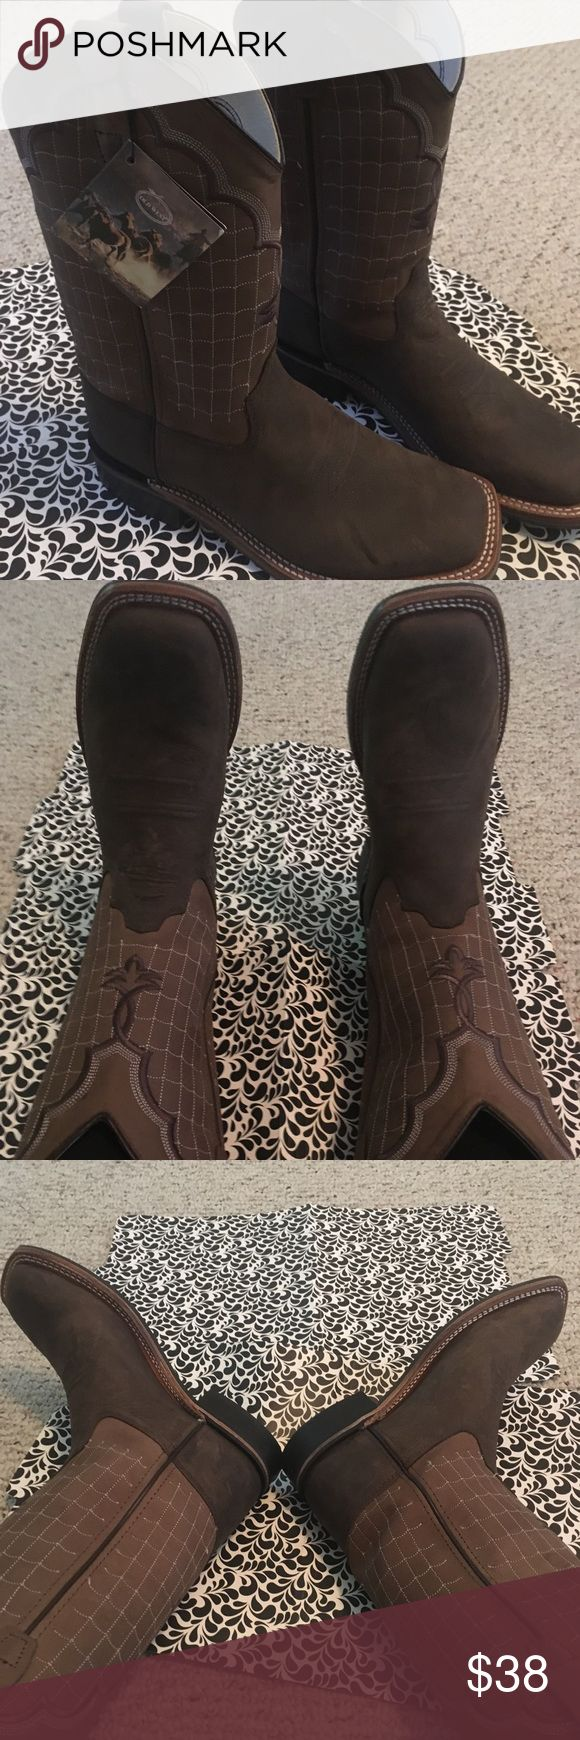 """NWT Old West """"Cowboy Boots"""" Brand new! Very durable. These can be worn unisex. I am a 7.5 and I'm wearing them in the picture. Shoes Boots"""